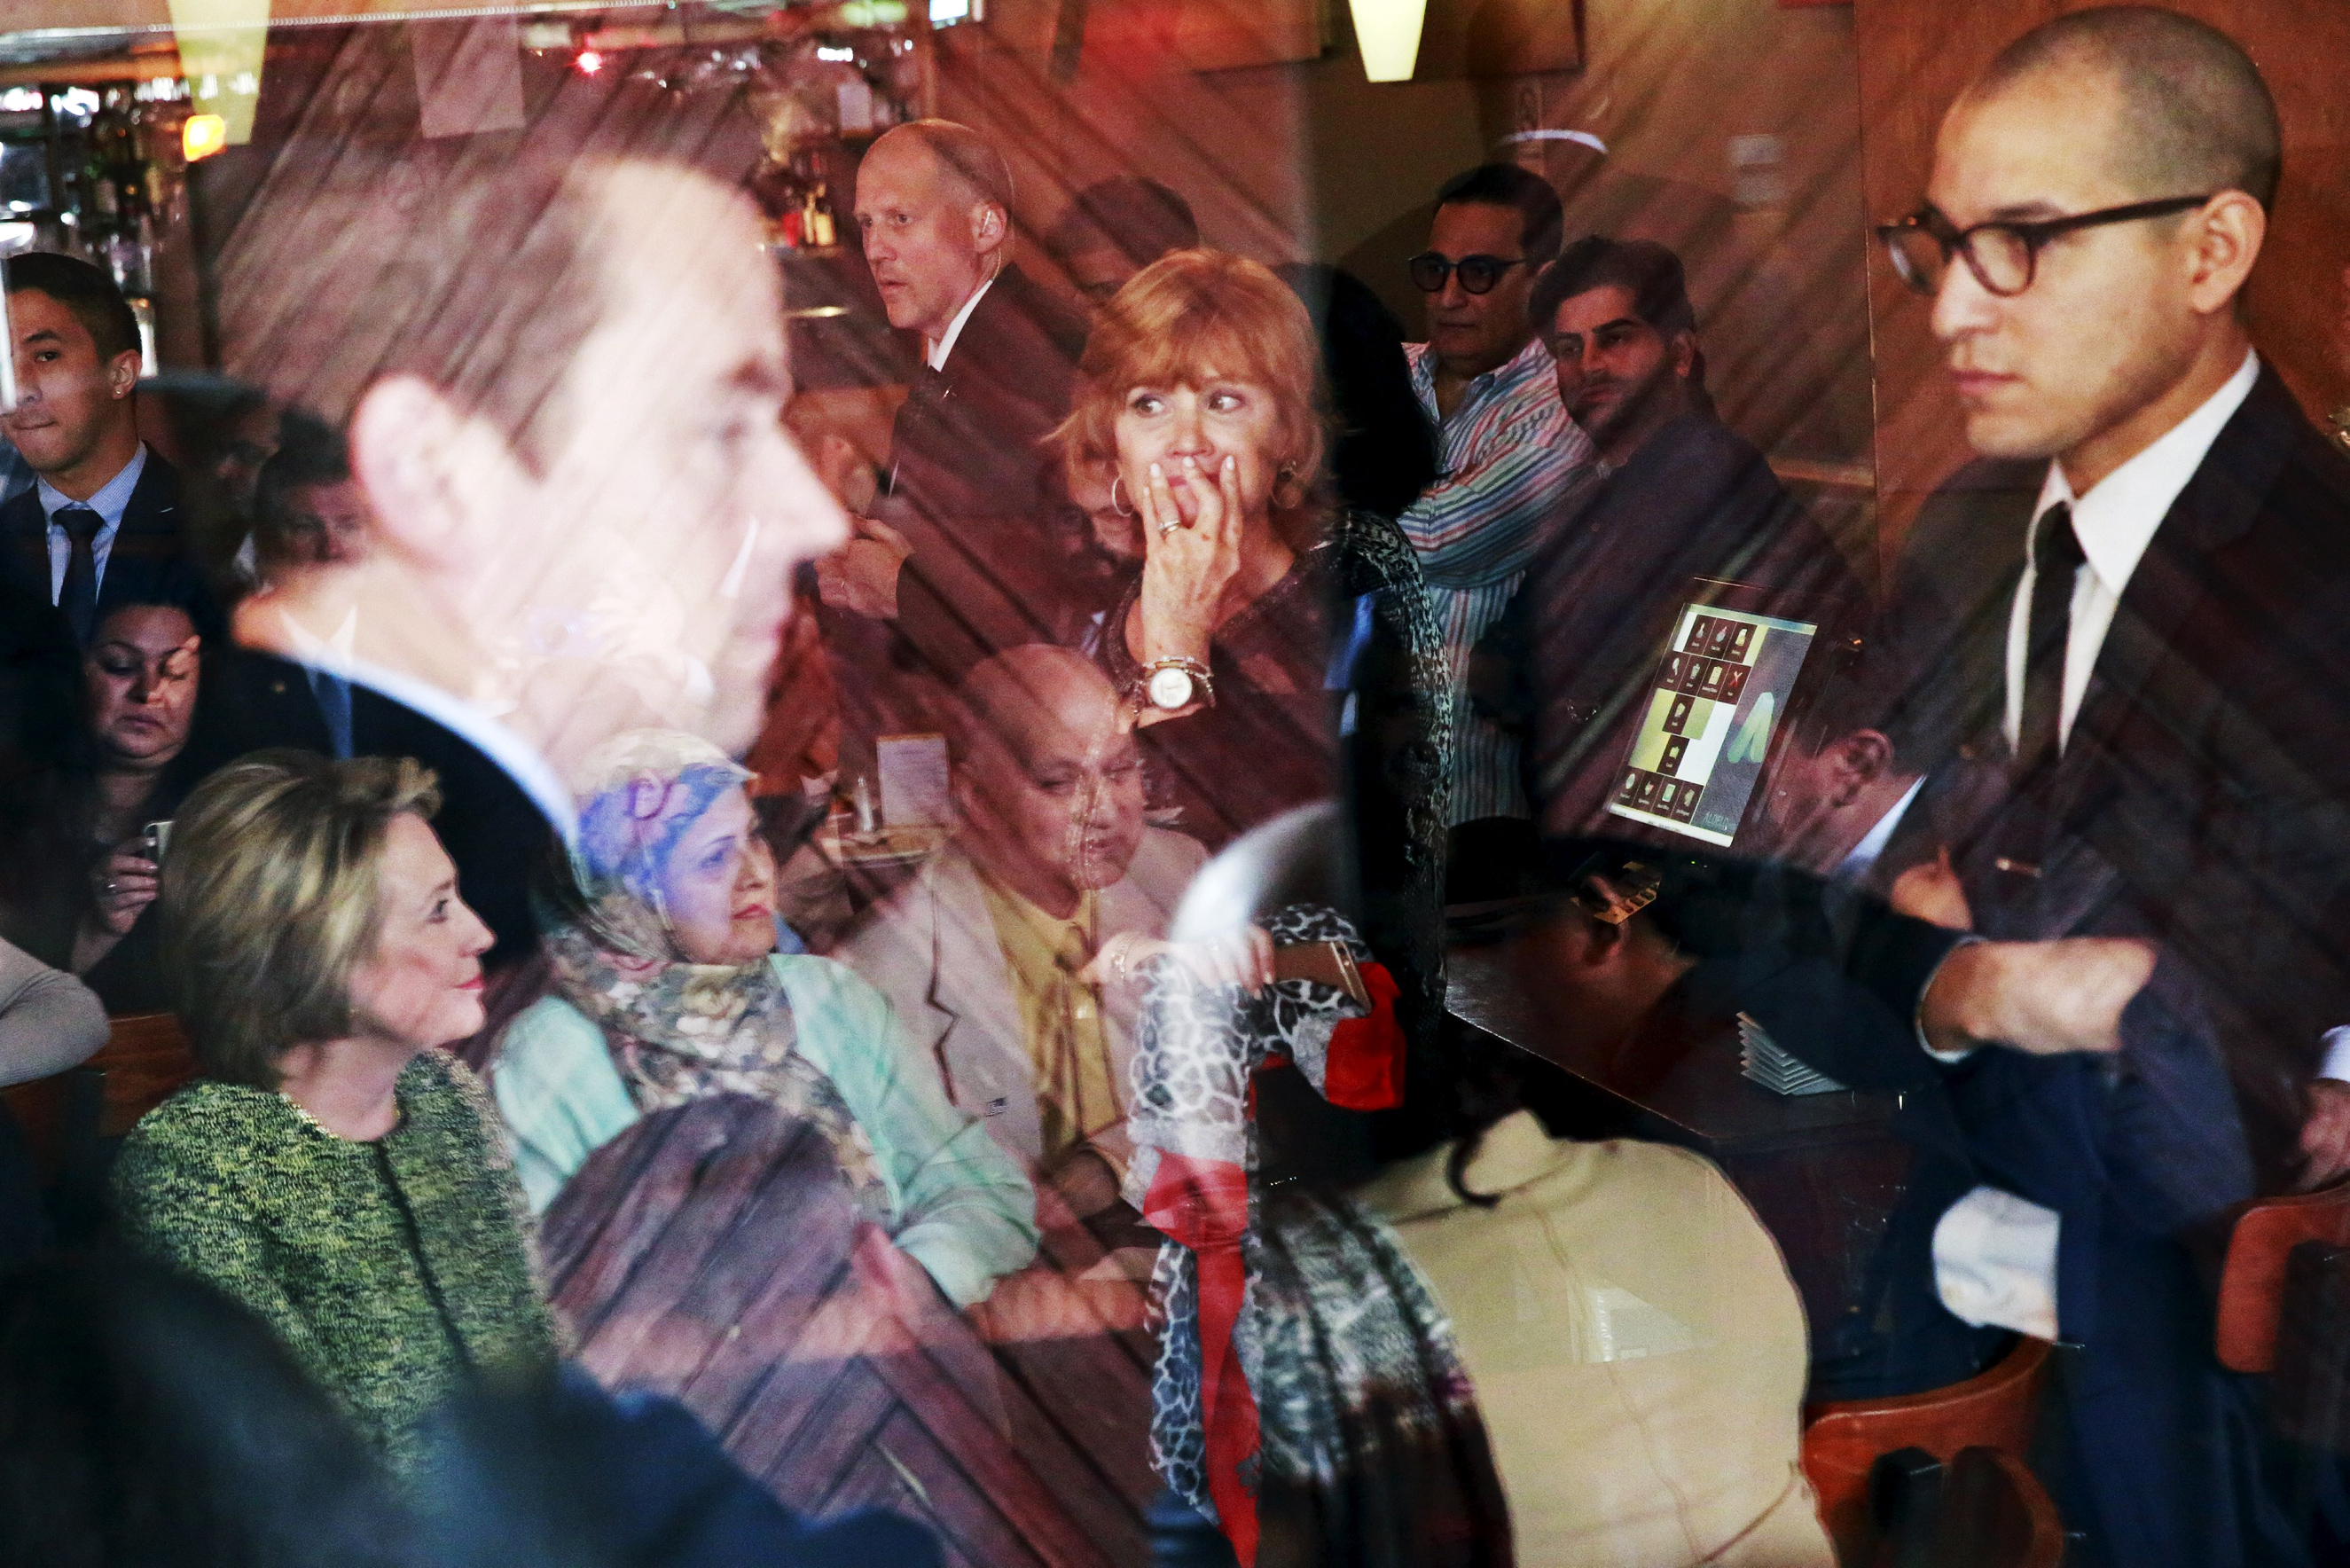 Patrons, security personnel, and members of the community gather to listen to Democratic presidential candidate Hillary Clinton during a visit to the Jackson Diner in New York's Queens borough on April 11, 2016.